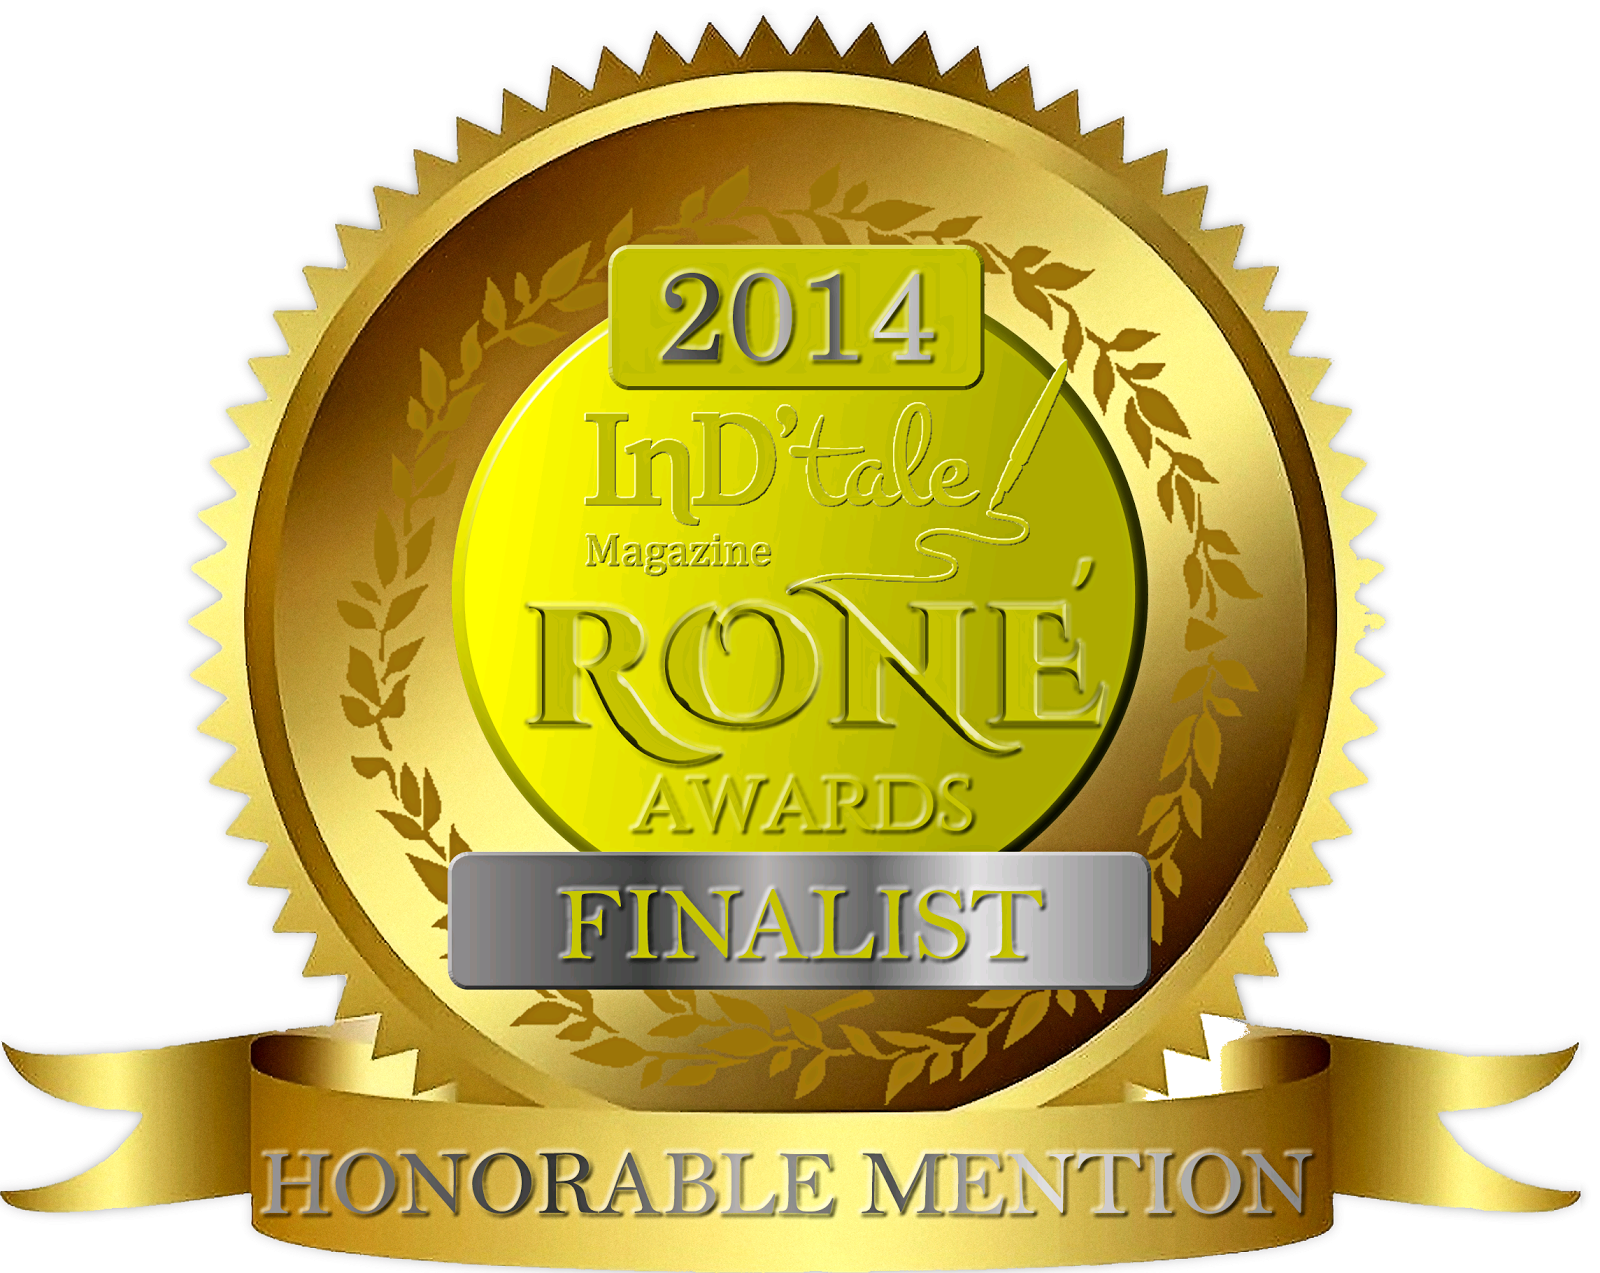 2014 RONE Award for Getting Down to Business